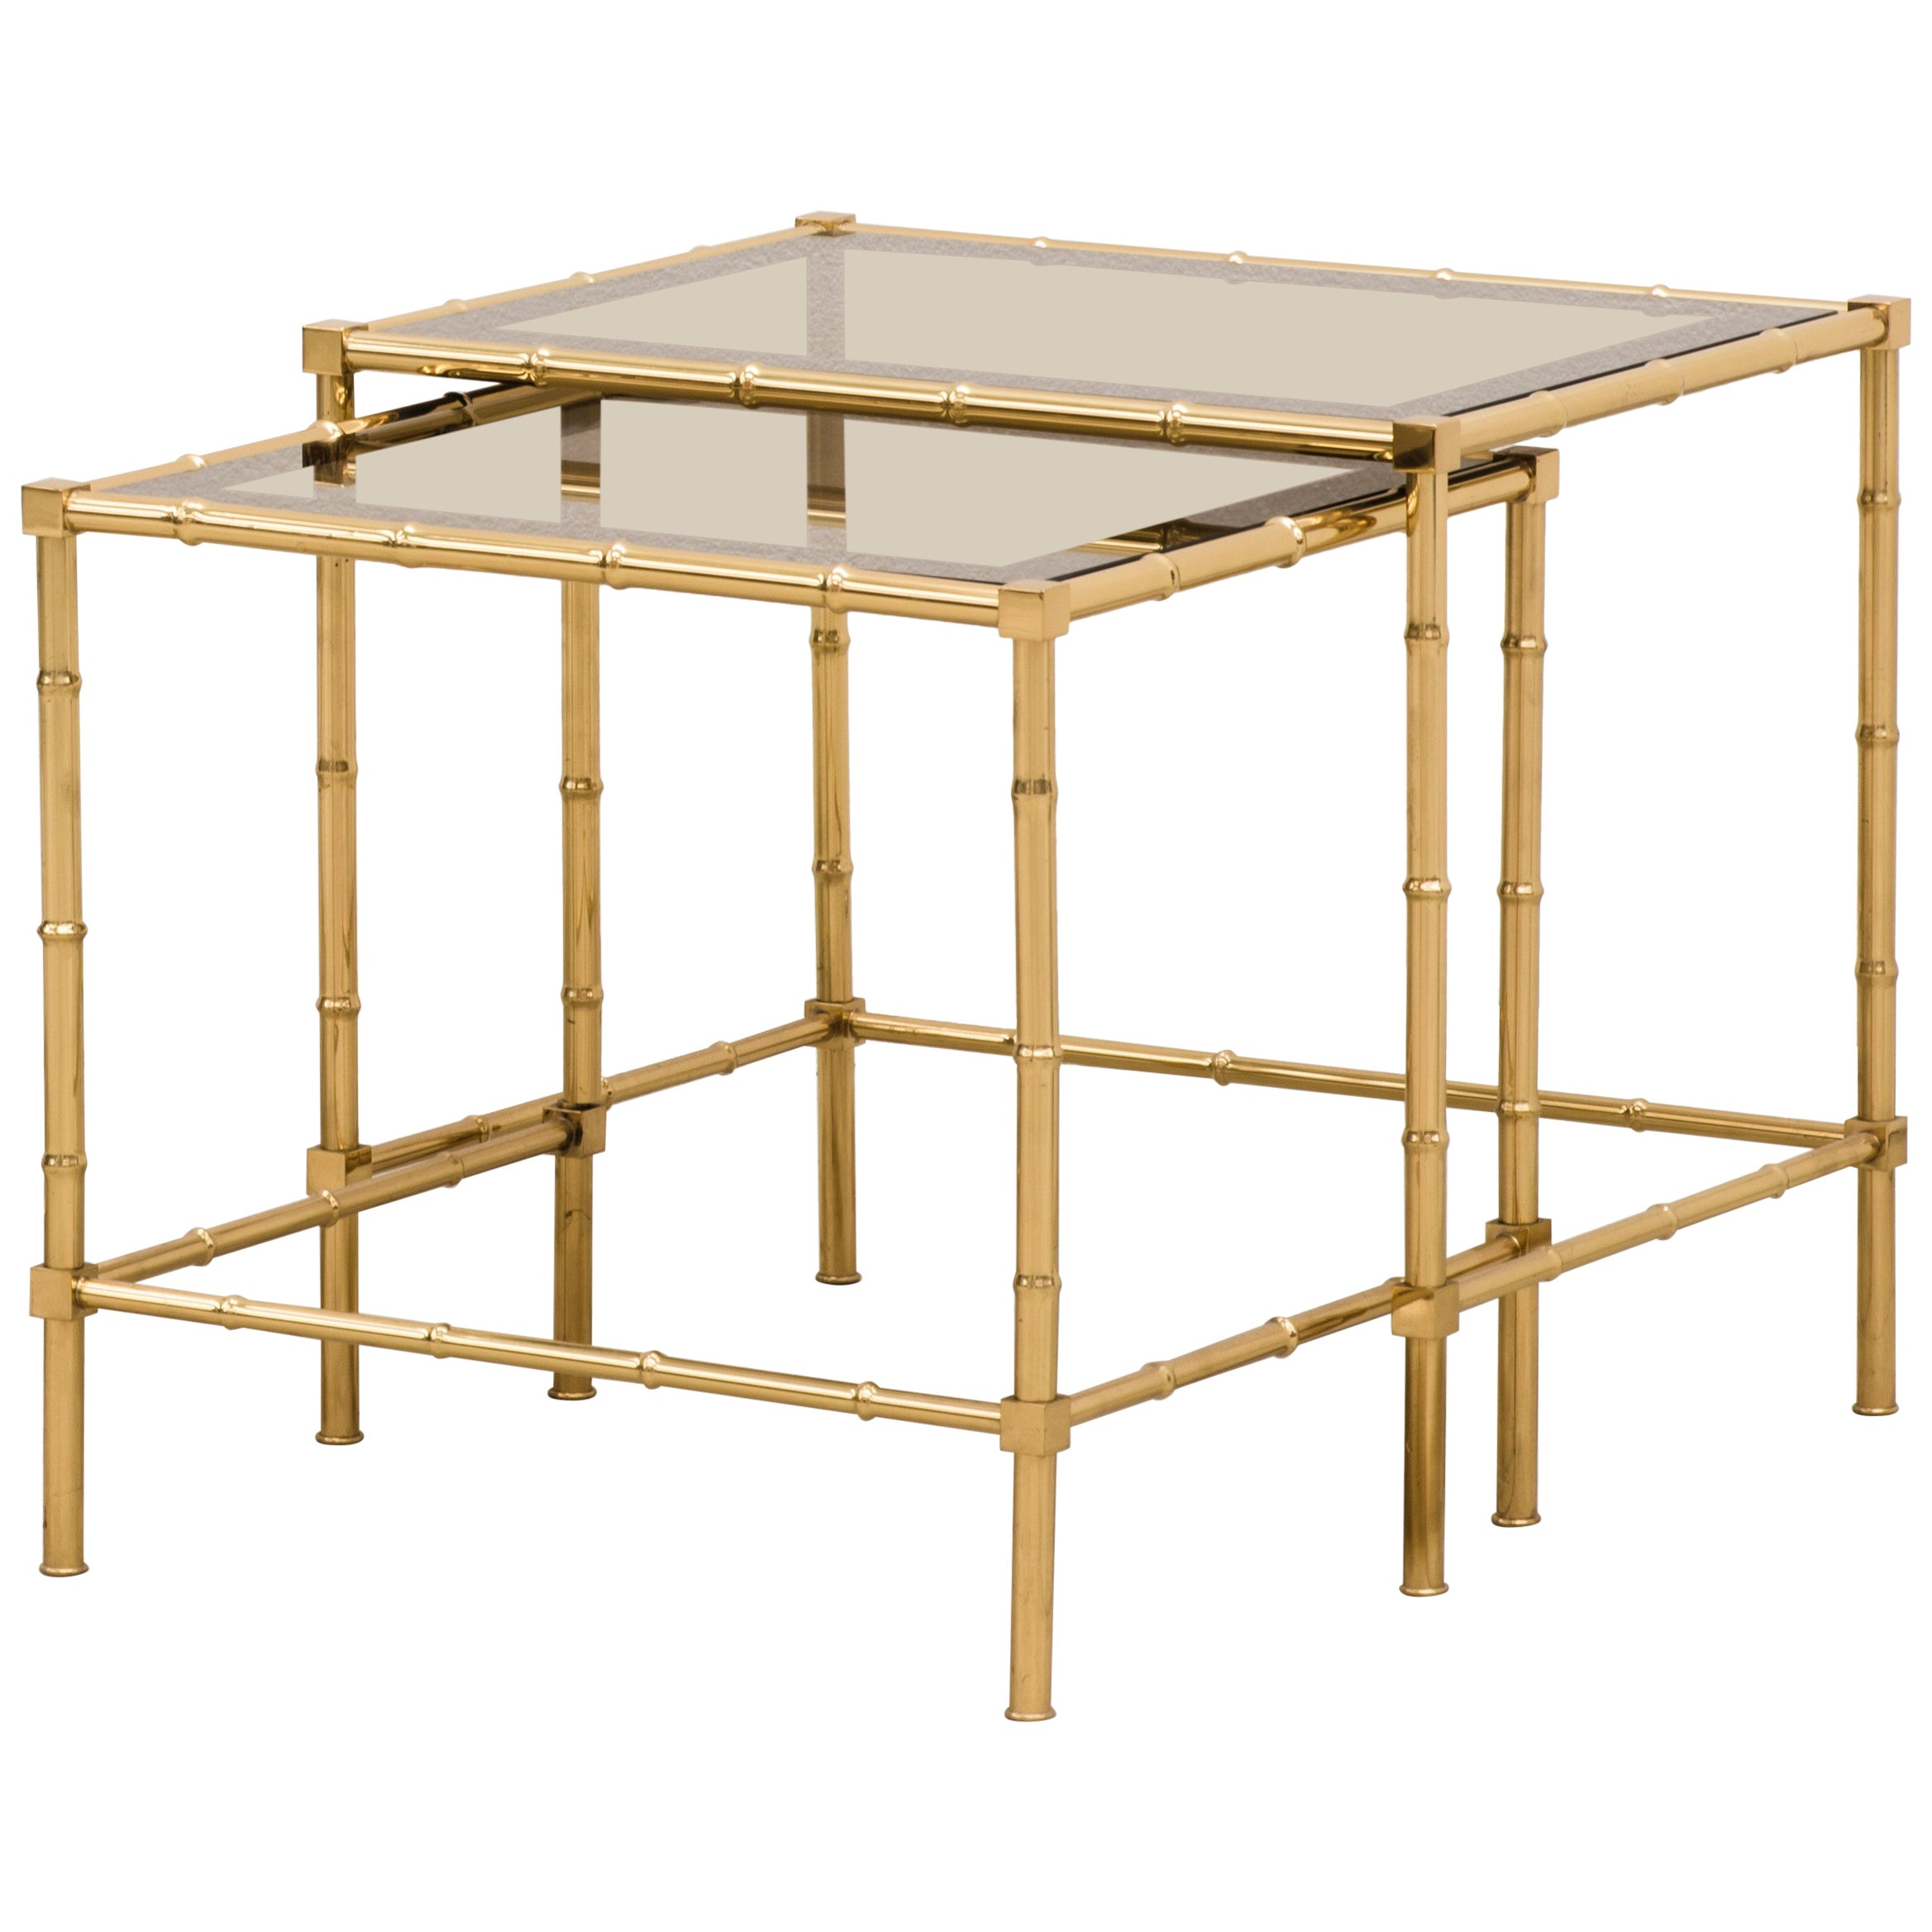 1980s Italian Brass and Mirror Glass Faux Bamboo Hollywood Regency Coffee Tables